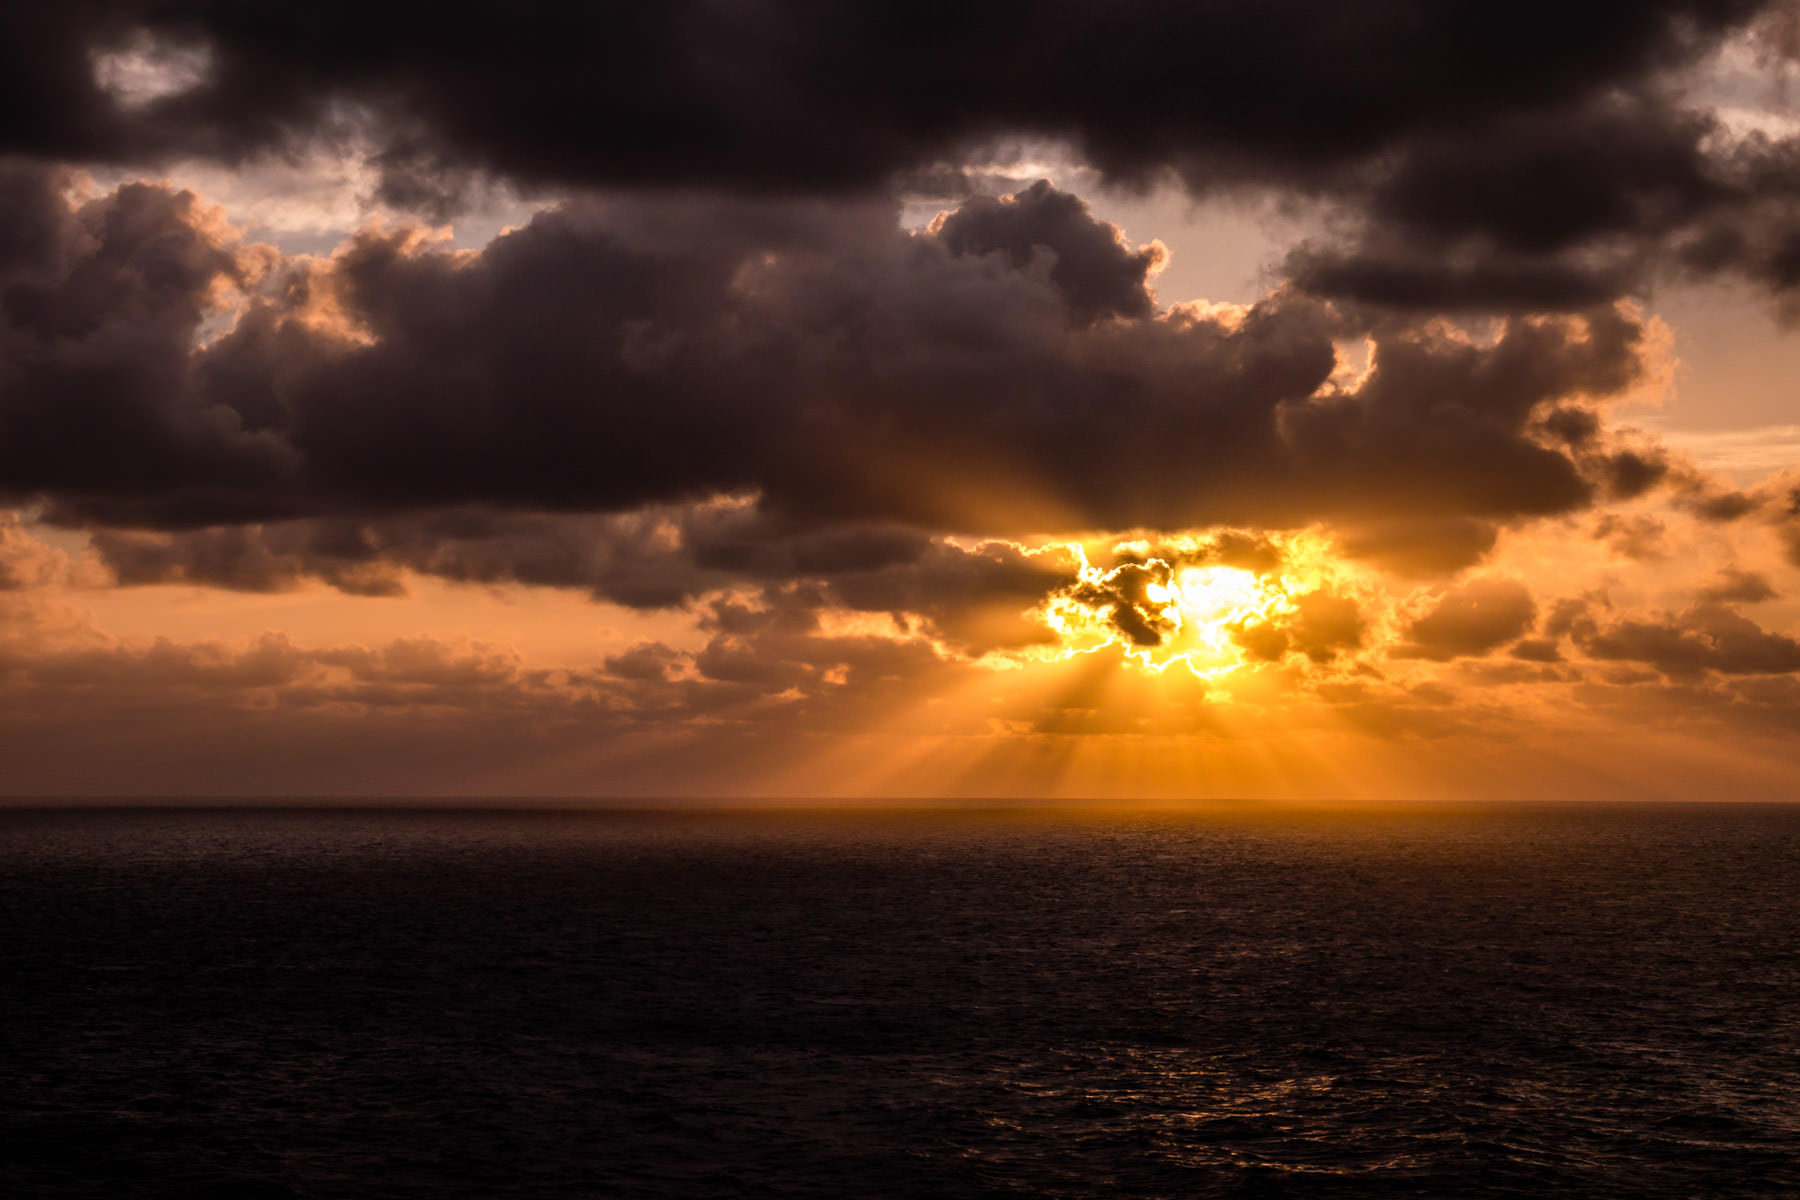 The sun's rays pierce the morning clouds to illuminate the Gulf of Mexico.